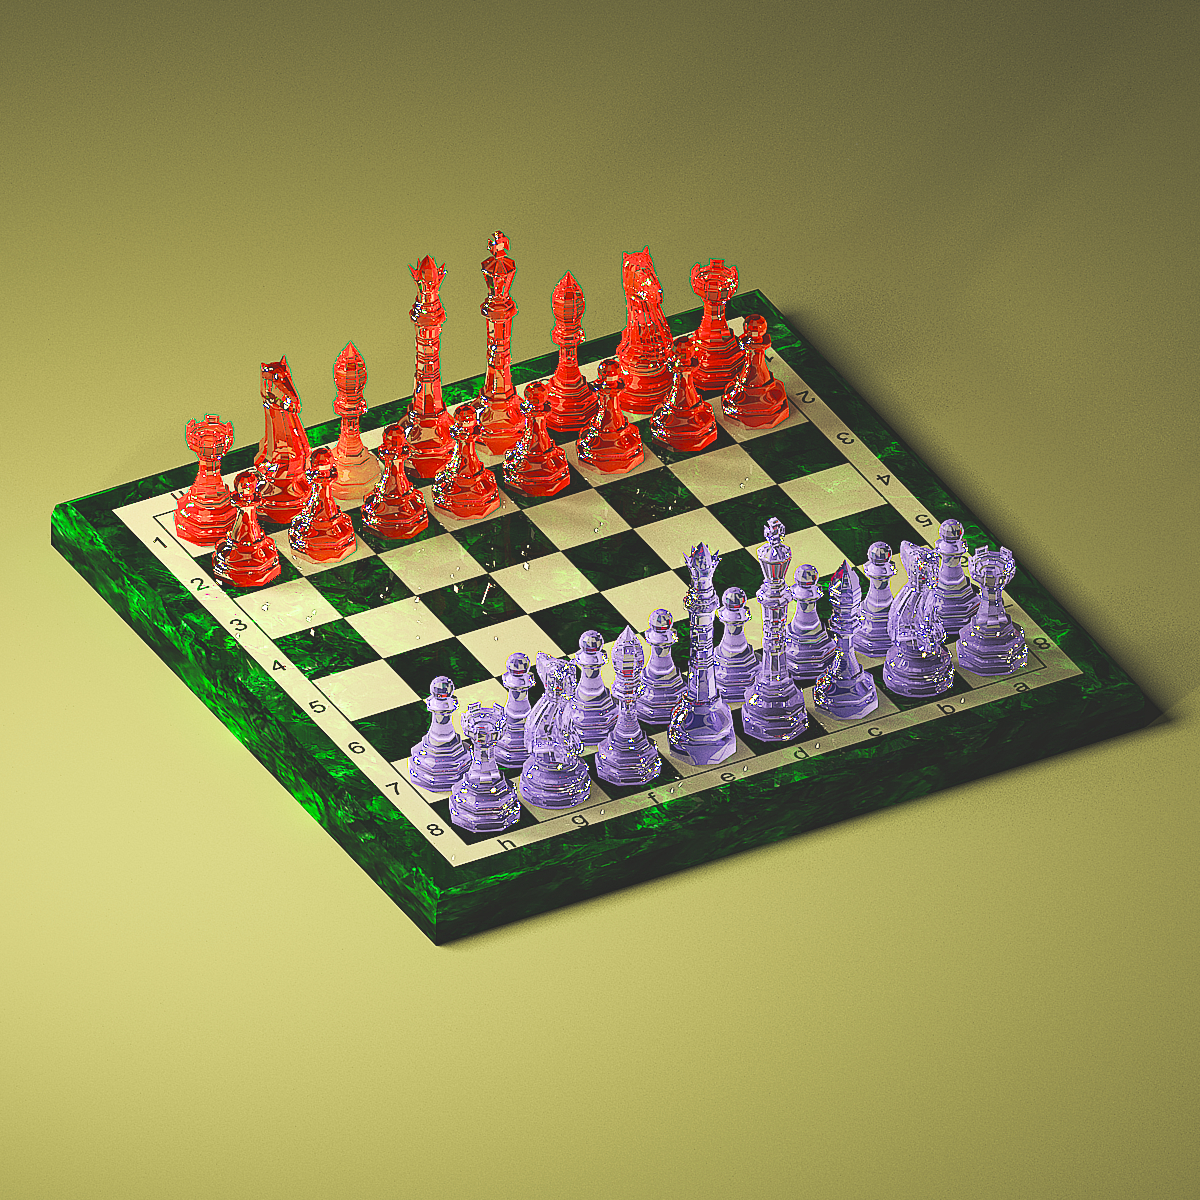 3d visualization of the project in the glass chess 3d max, render vray 3.0 of Heavyraine